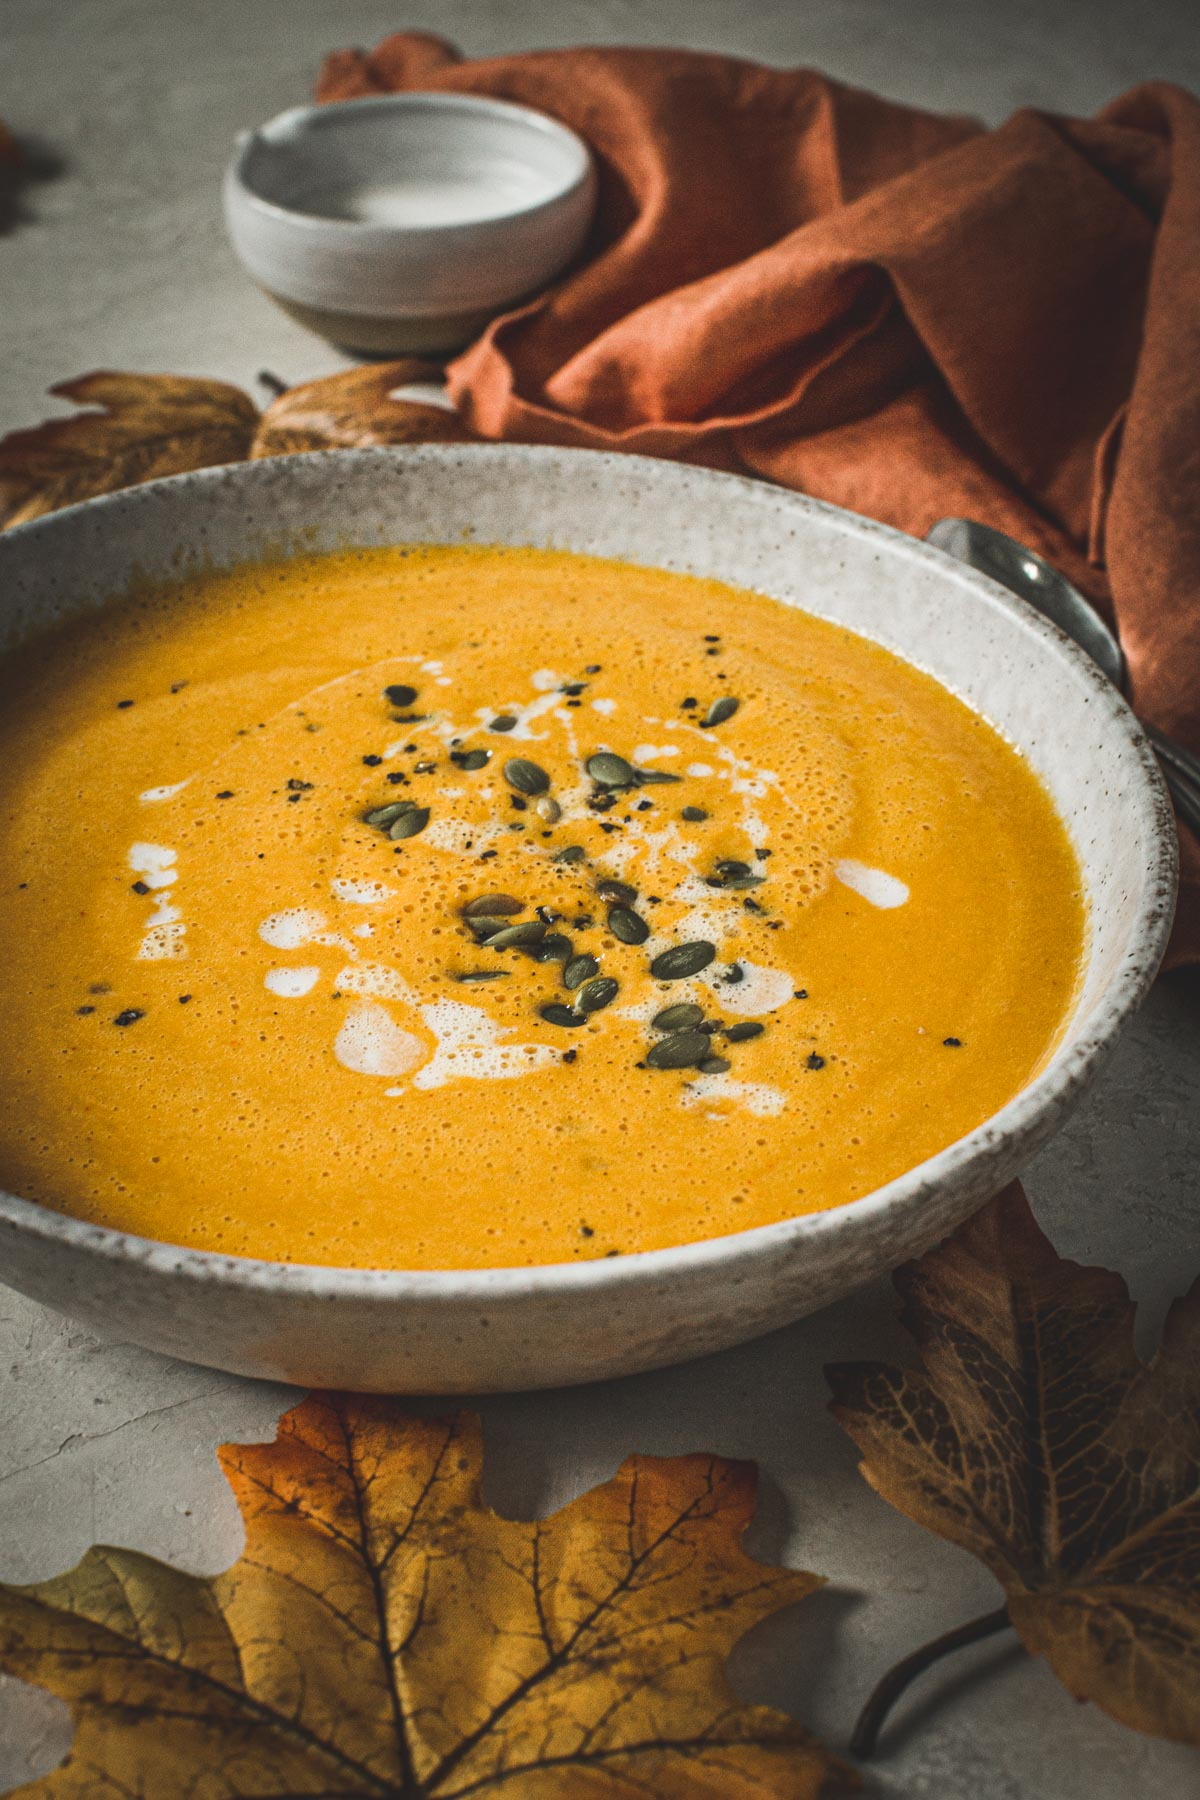 Curried pumpkin soup in a bowl topped with coconut milk and pumpkin seeds.